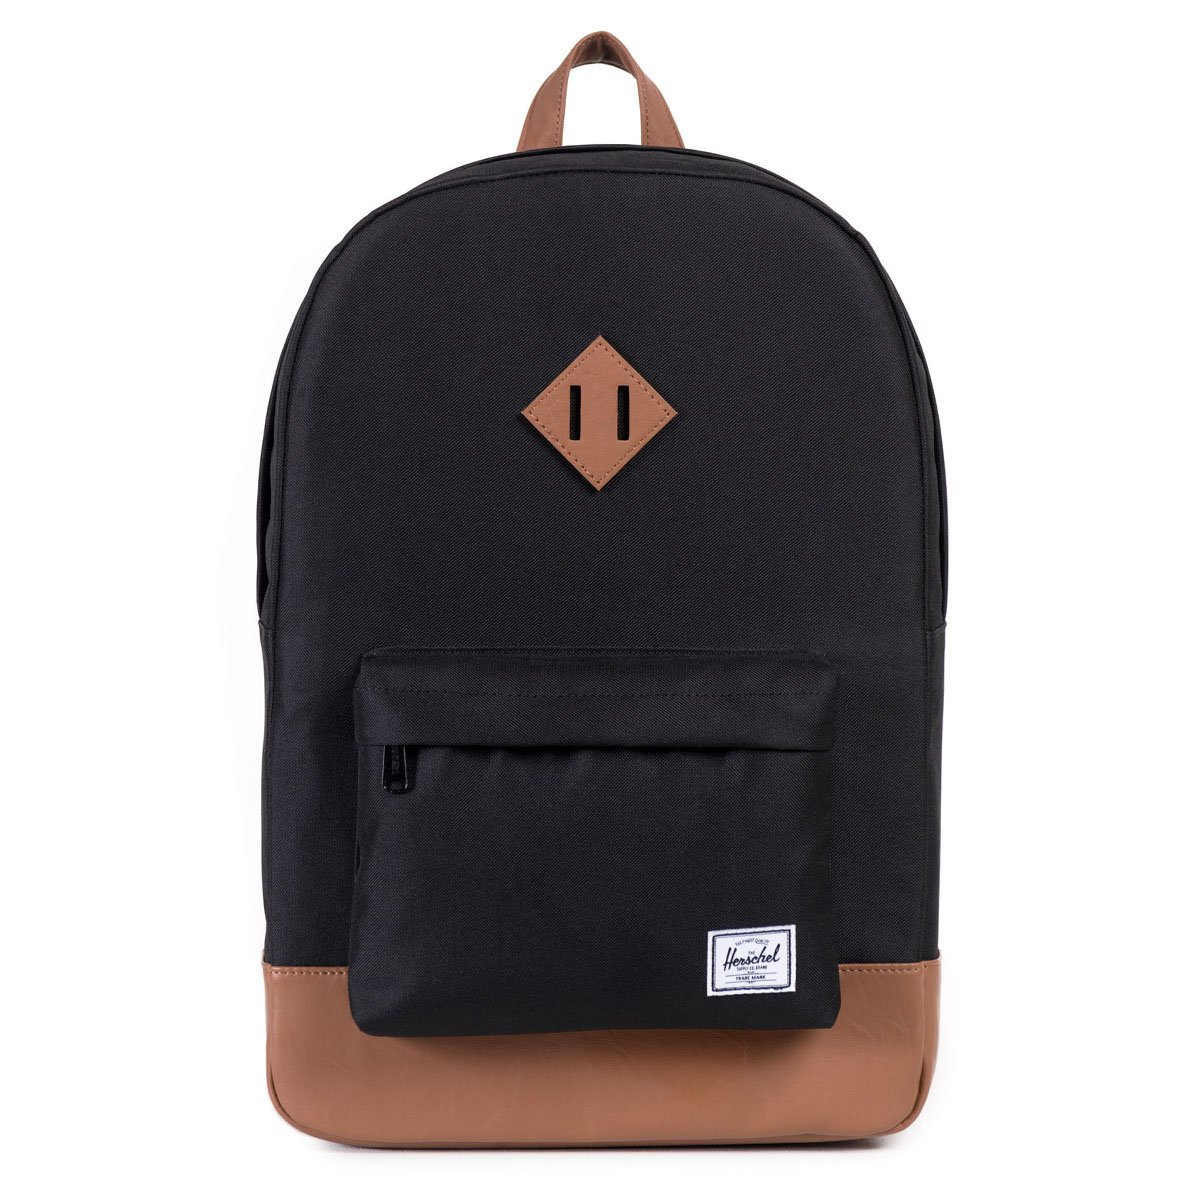 Herschel Supply Company Heritage Black Tan Black/Tan 1146_7178